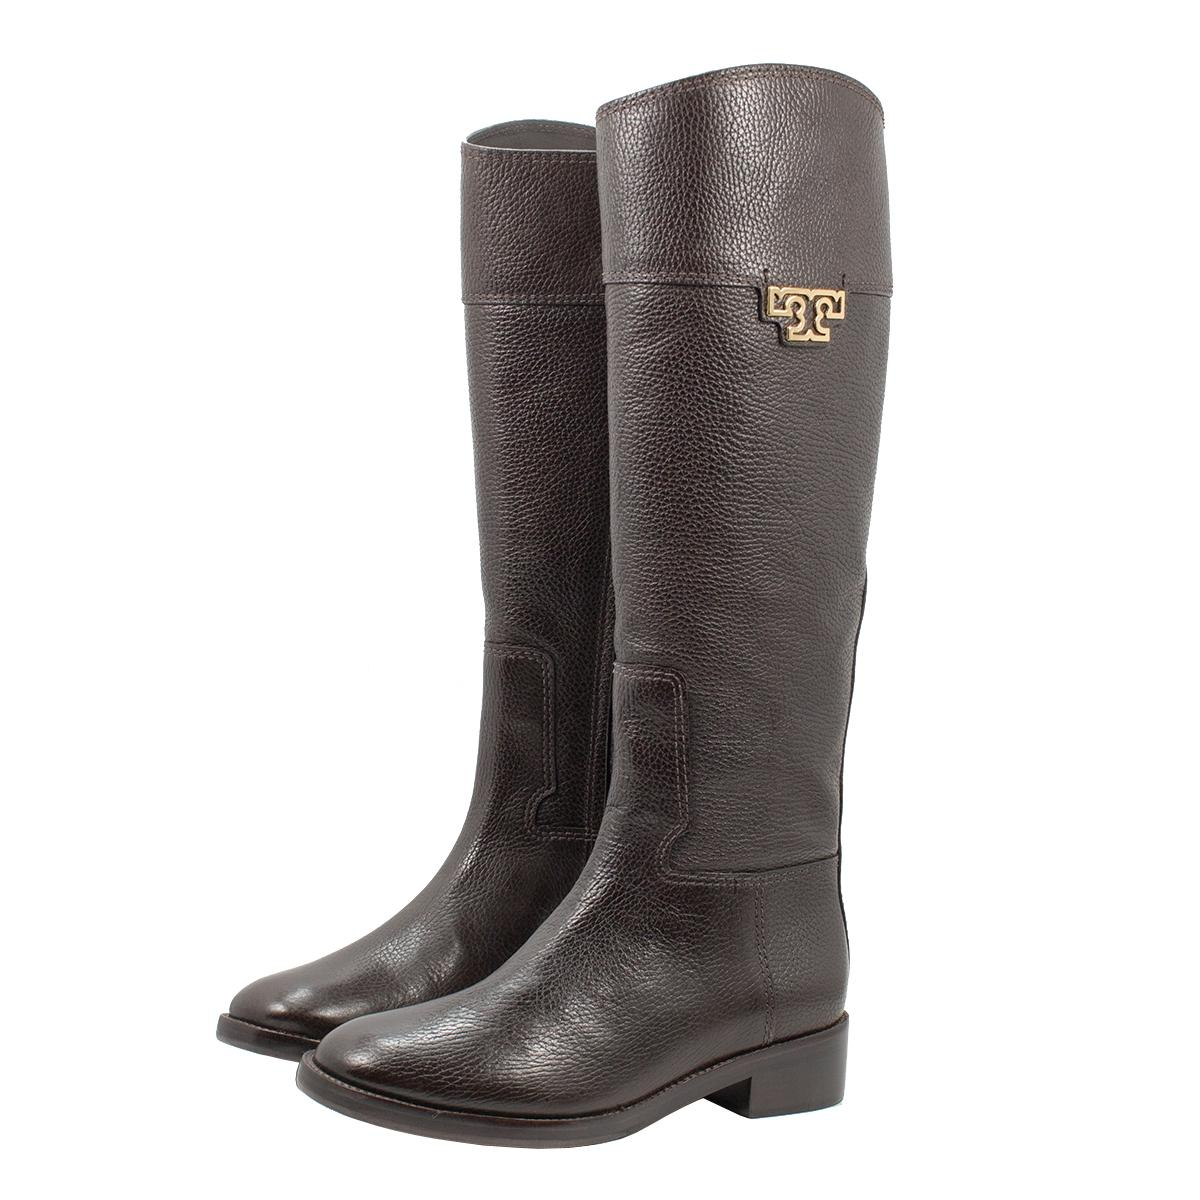 5f2273fa36b7 Men Women:Tory Burch Coconut Joanna Riding Boots Booties Size US 8 ...